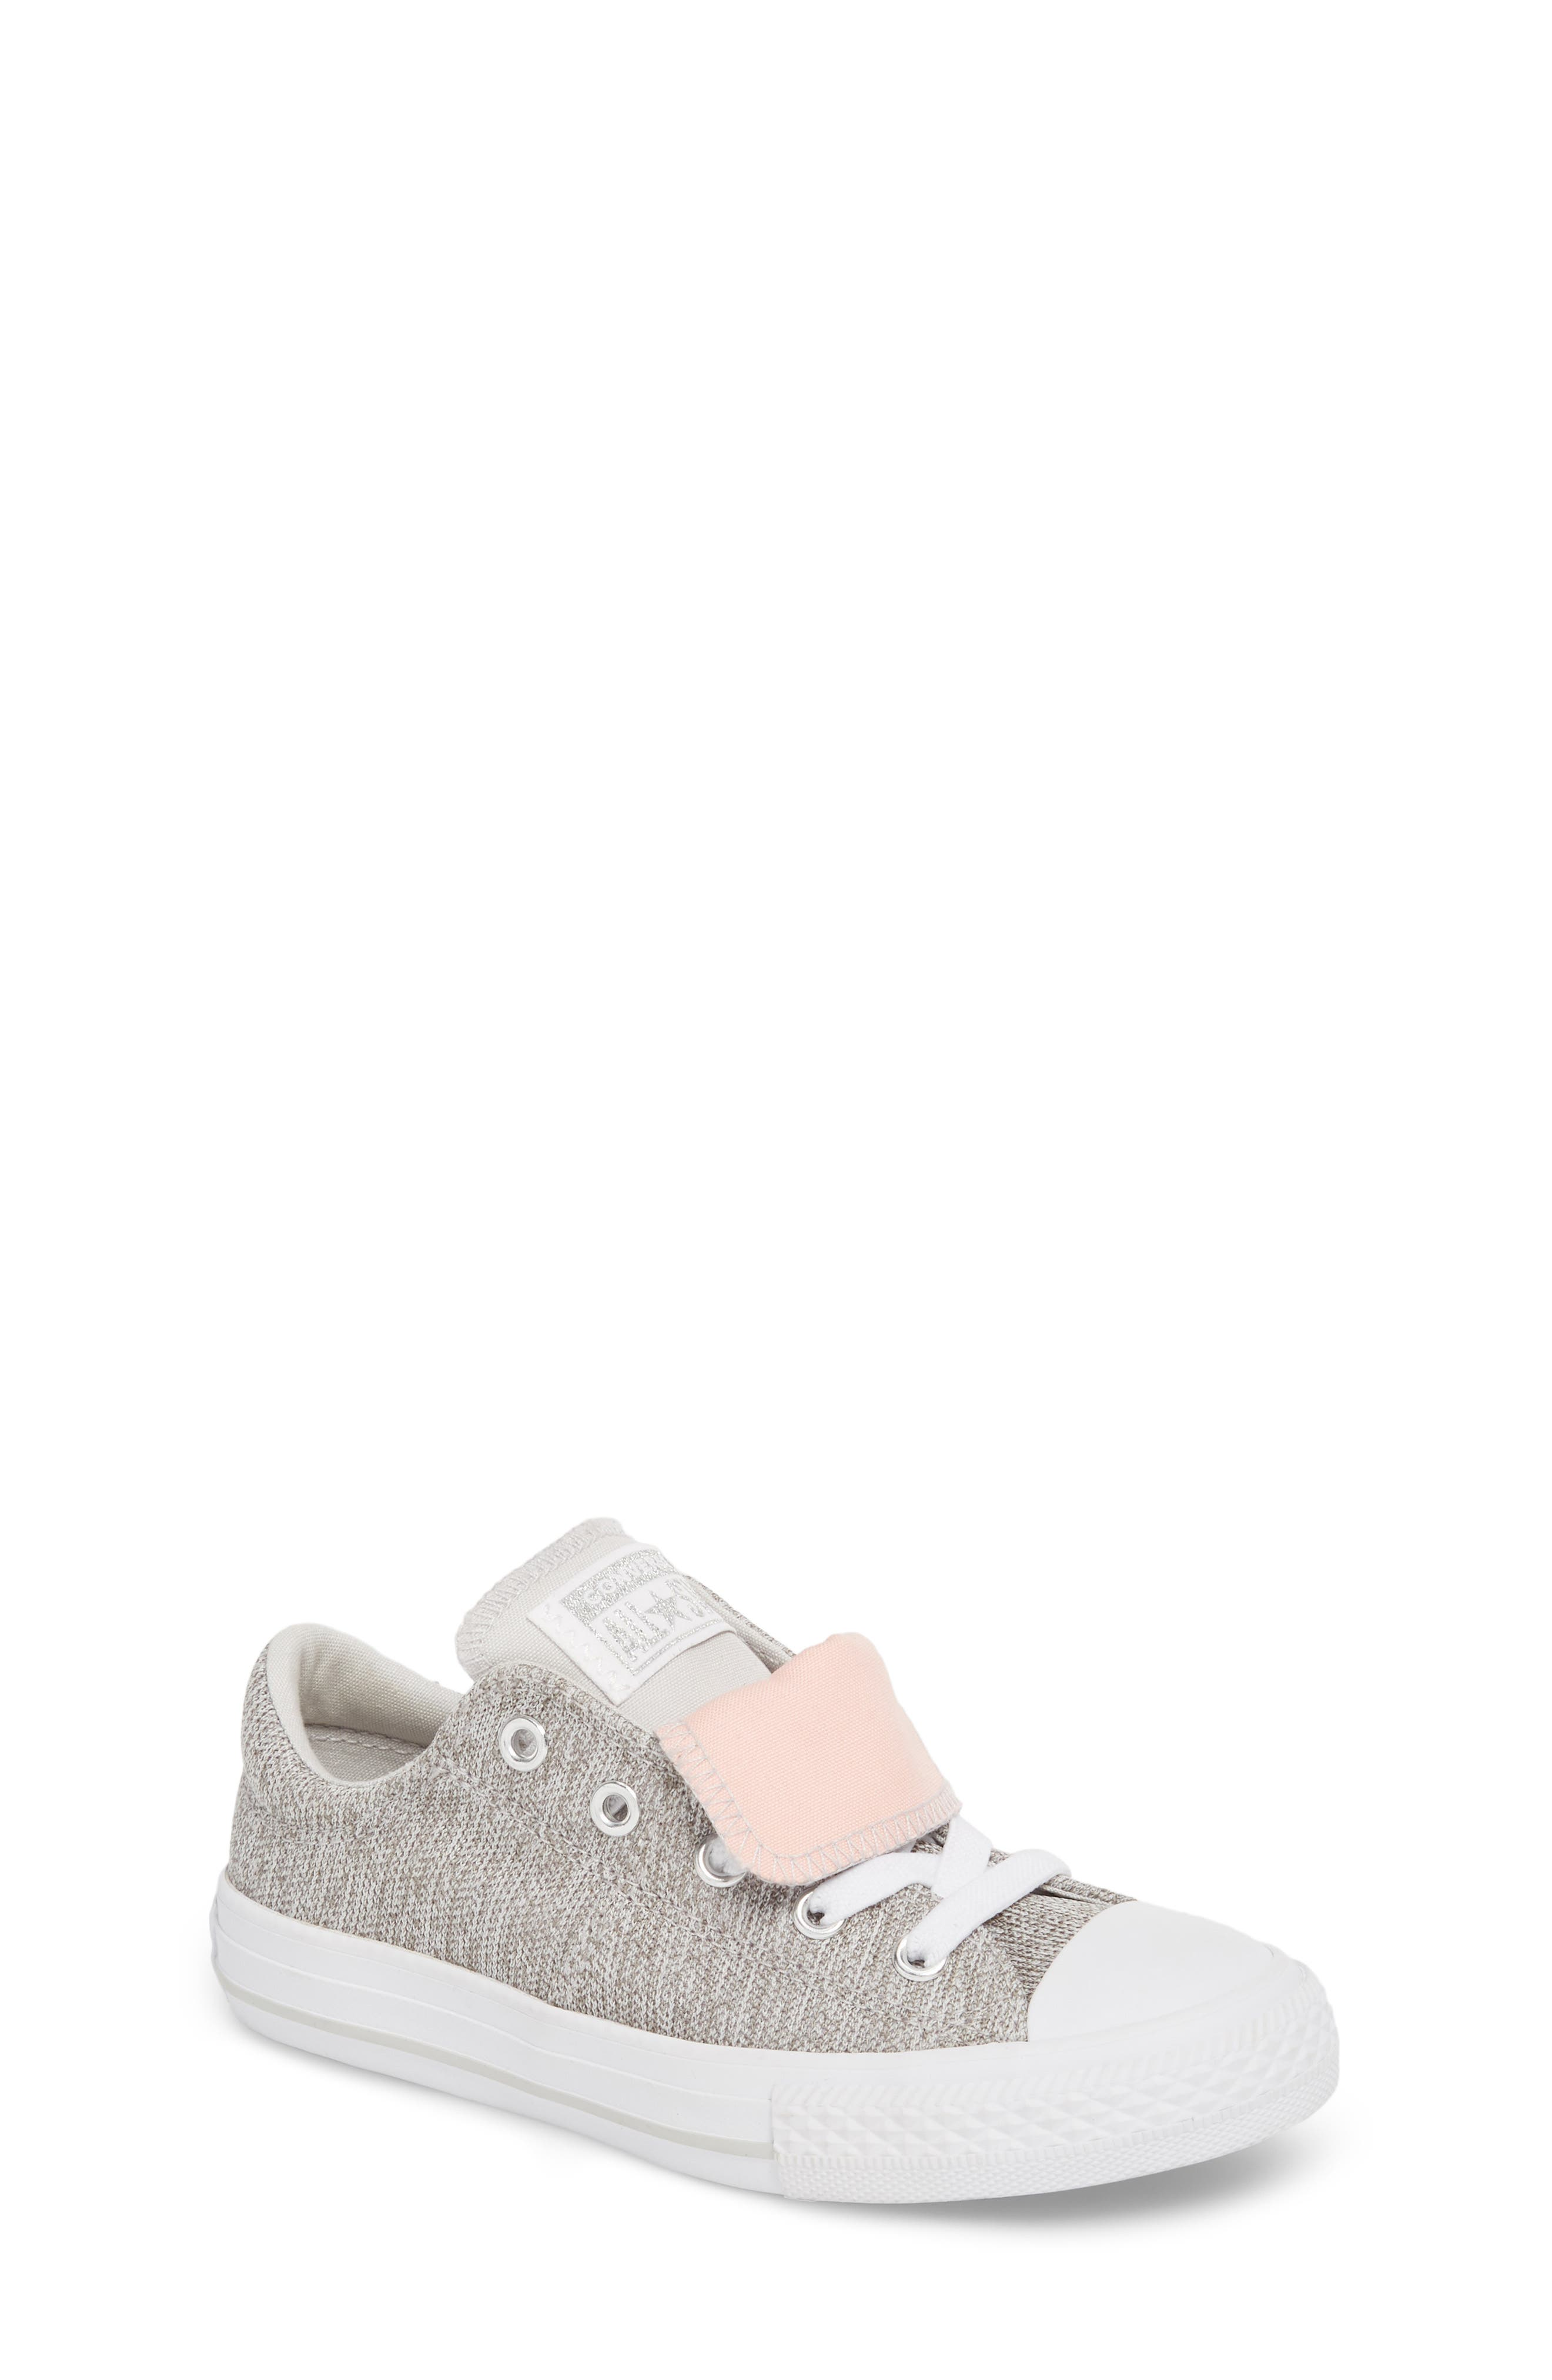 Chuck Taylor<sup>®</sup> All Star<sup>®</sup> Maddie Double Tongue Sneaker,                         Main,                         color, 050